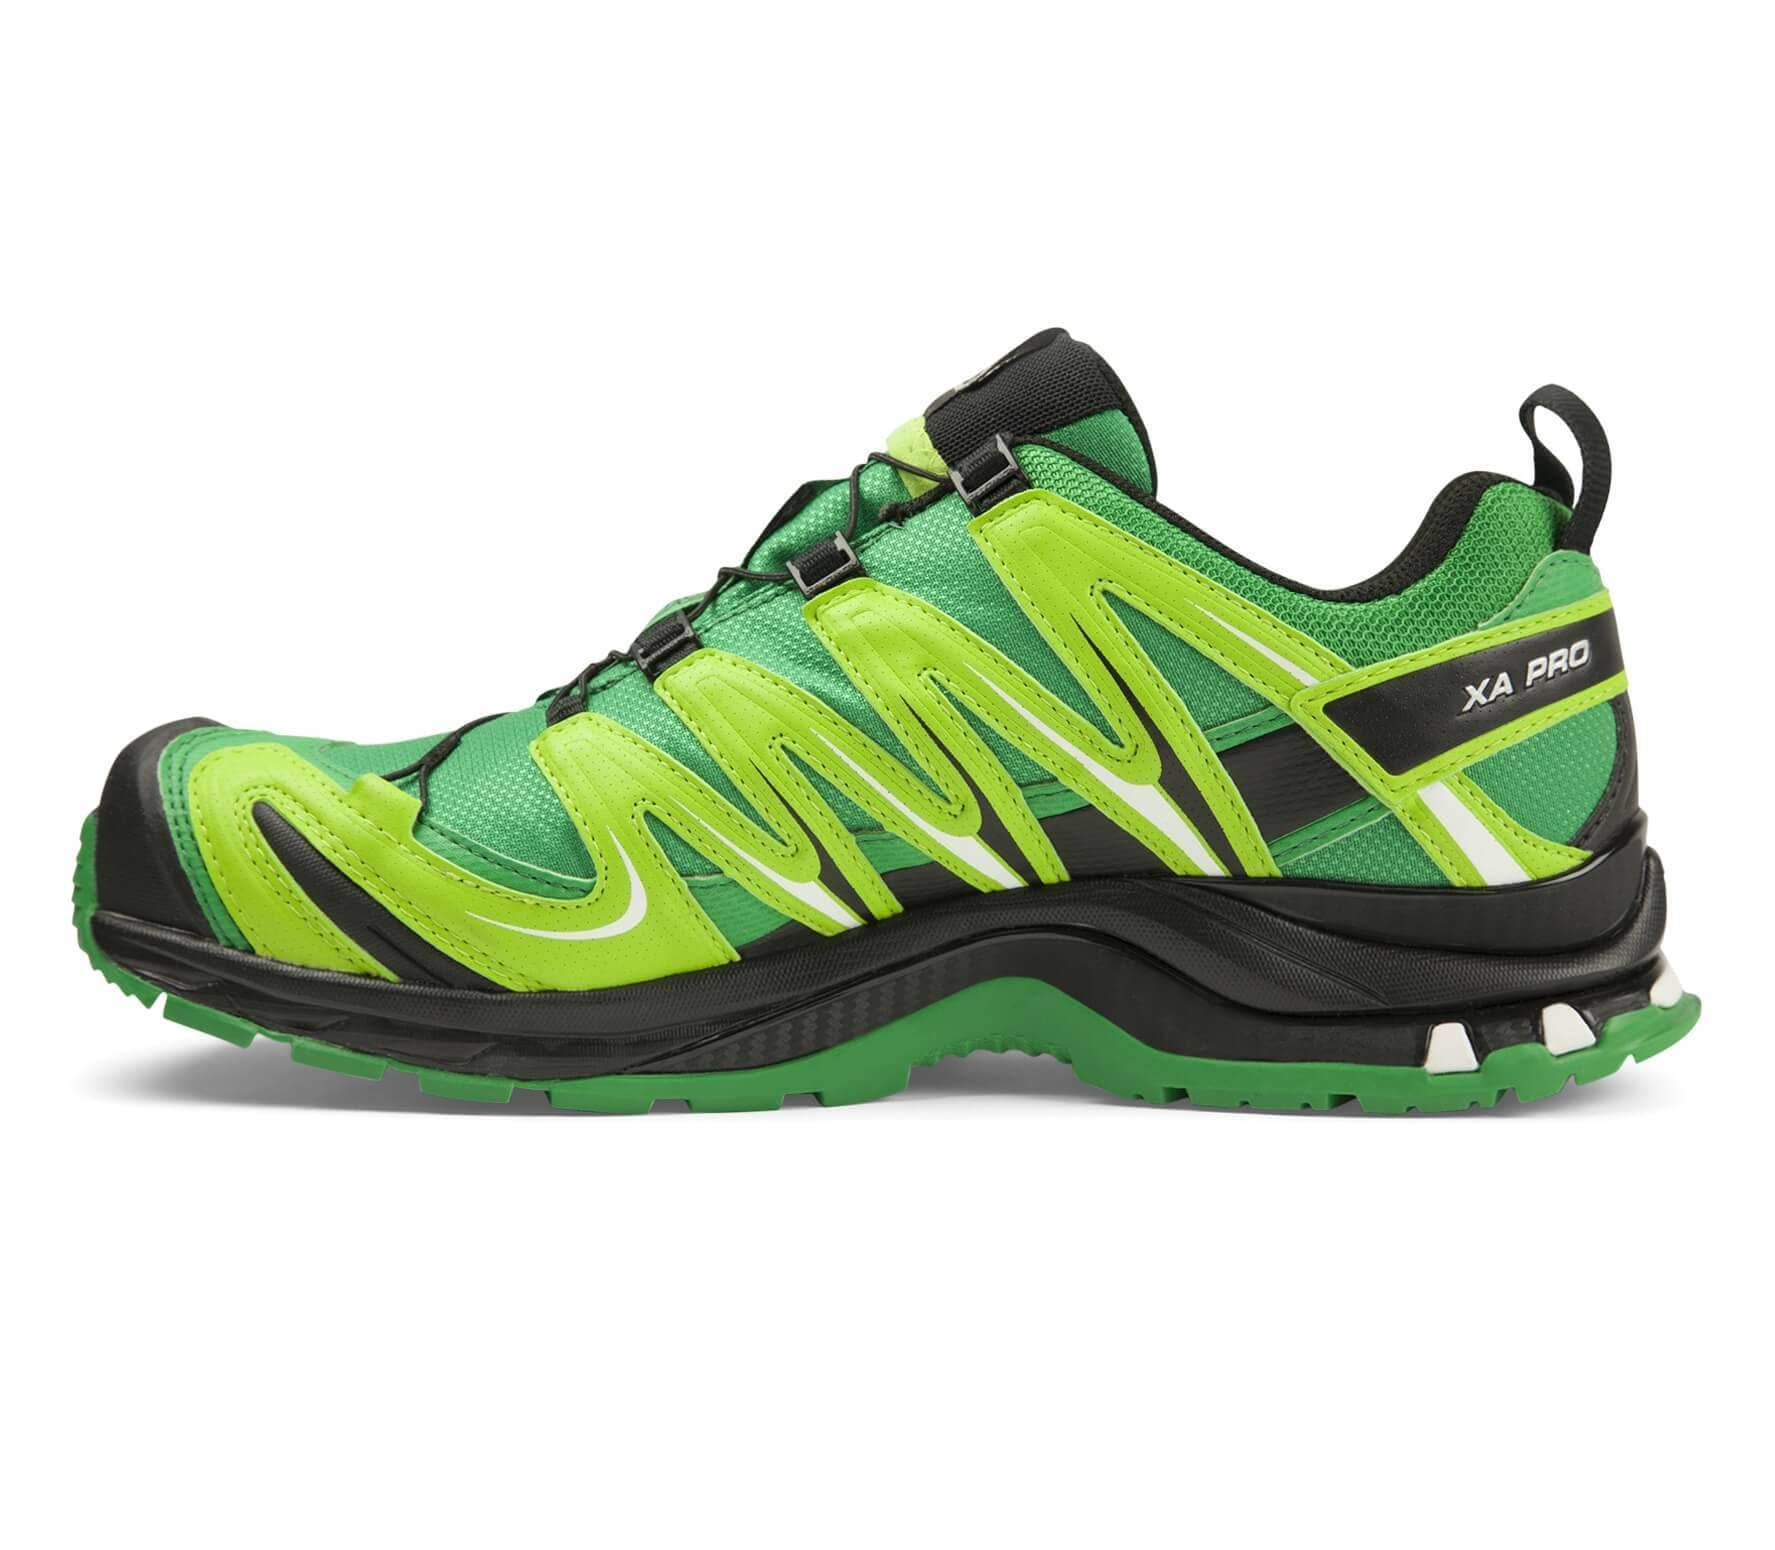 4e3caf2bb85 Salomon - XA Pro 3D GTX men's trail running shoes (green/light yellow)